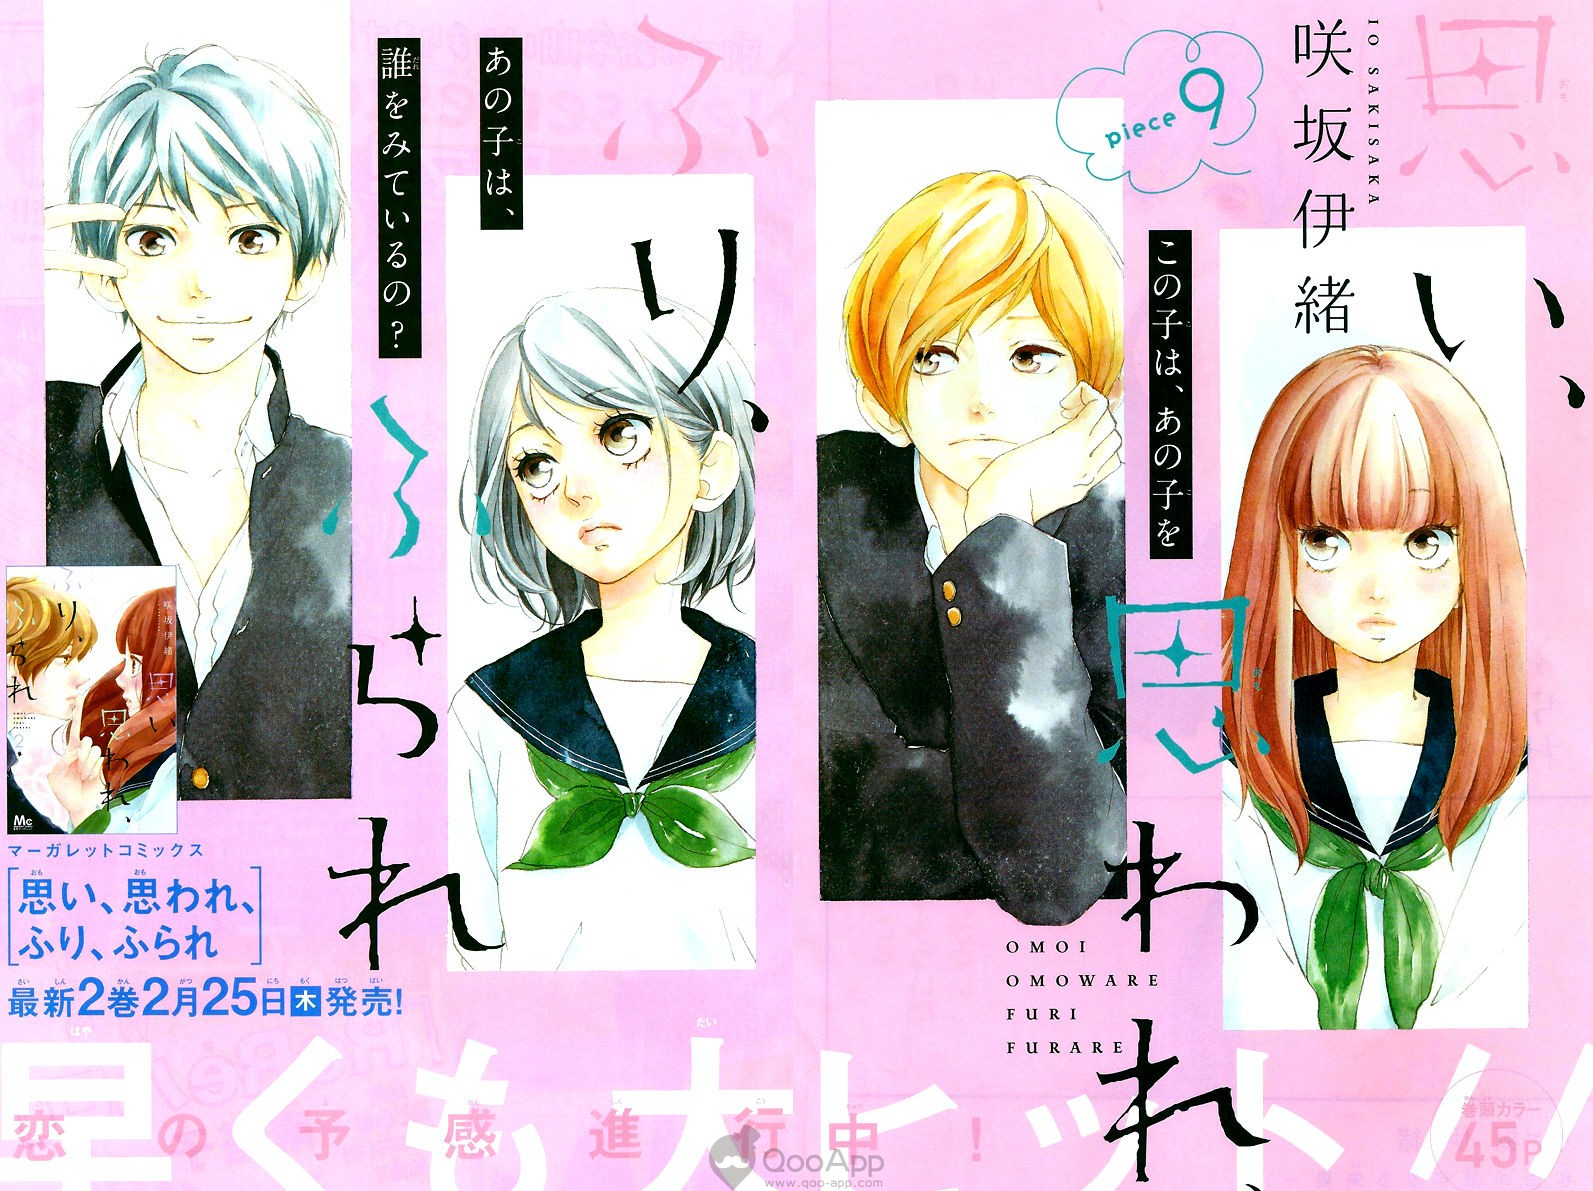 Romance Manga Omoi, Omoware, Furi, Furare gets Anime Film and Live-Action Film